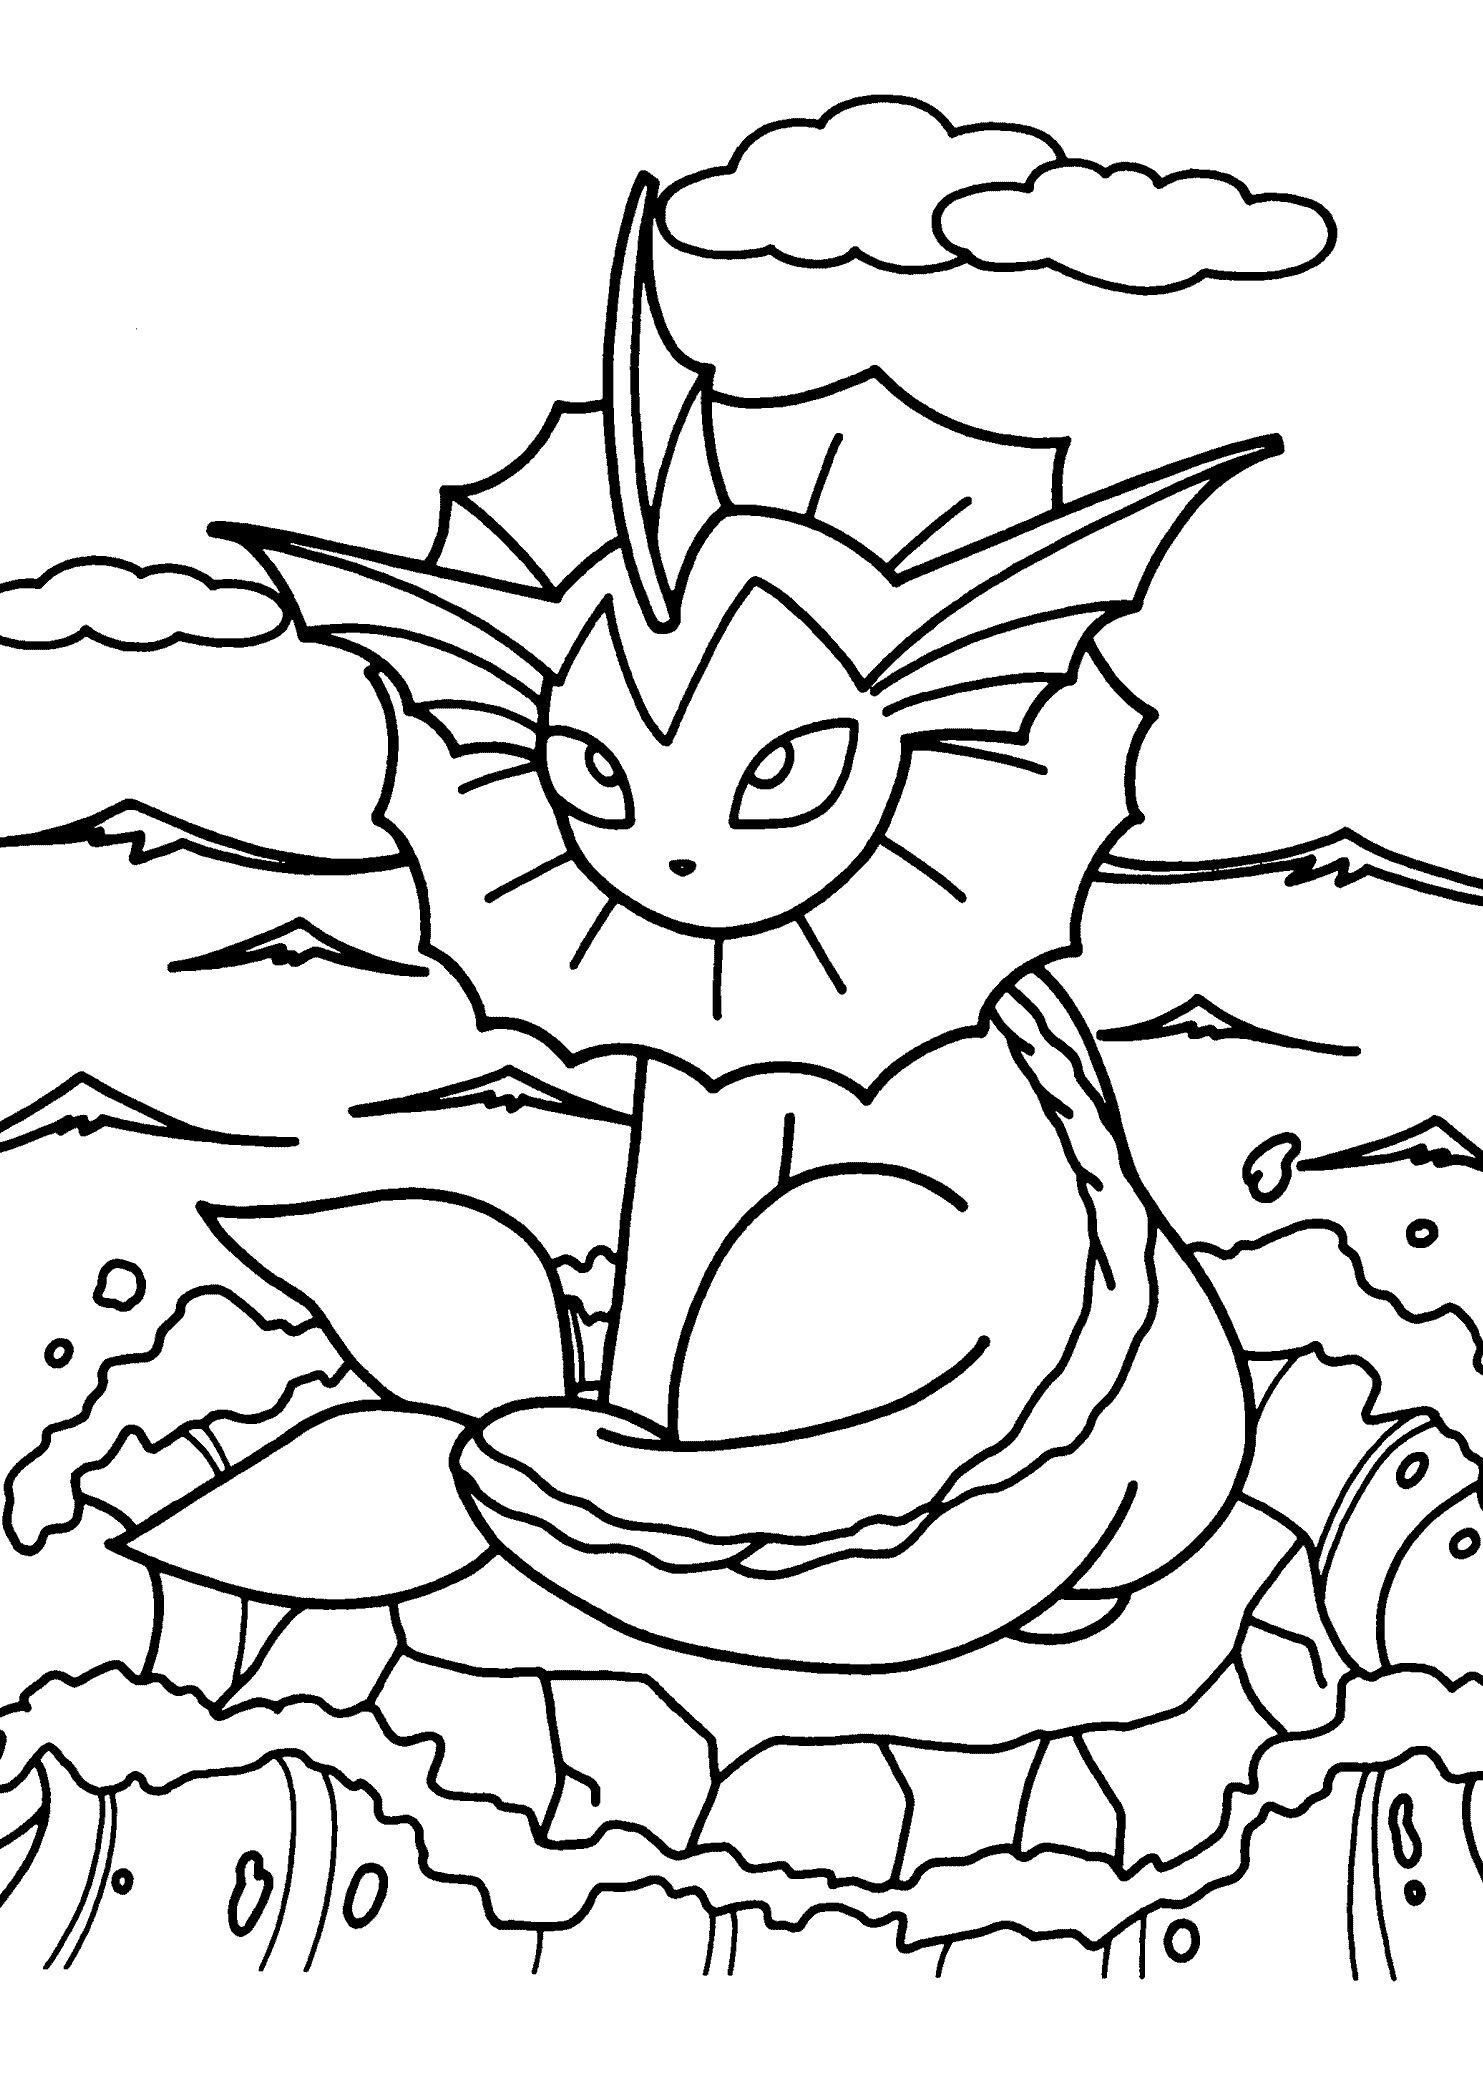 Coloring Book Pokemon Black And White Pokemon Coloring Pages